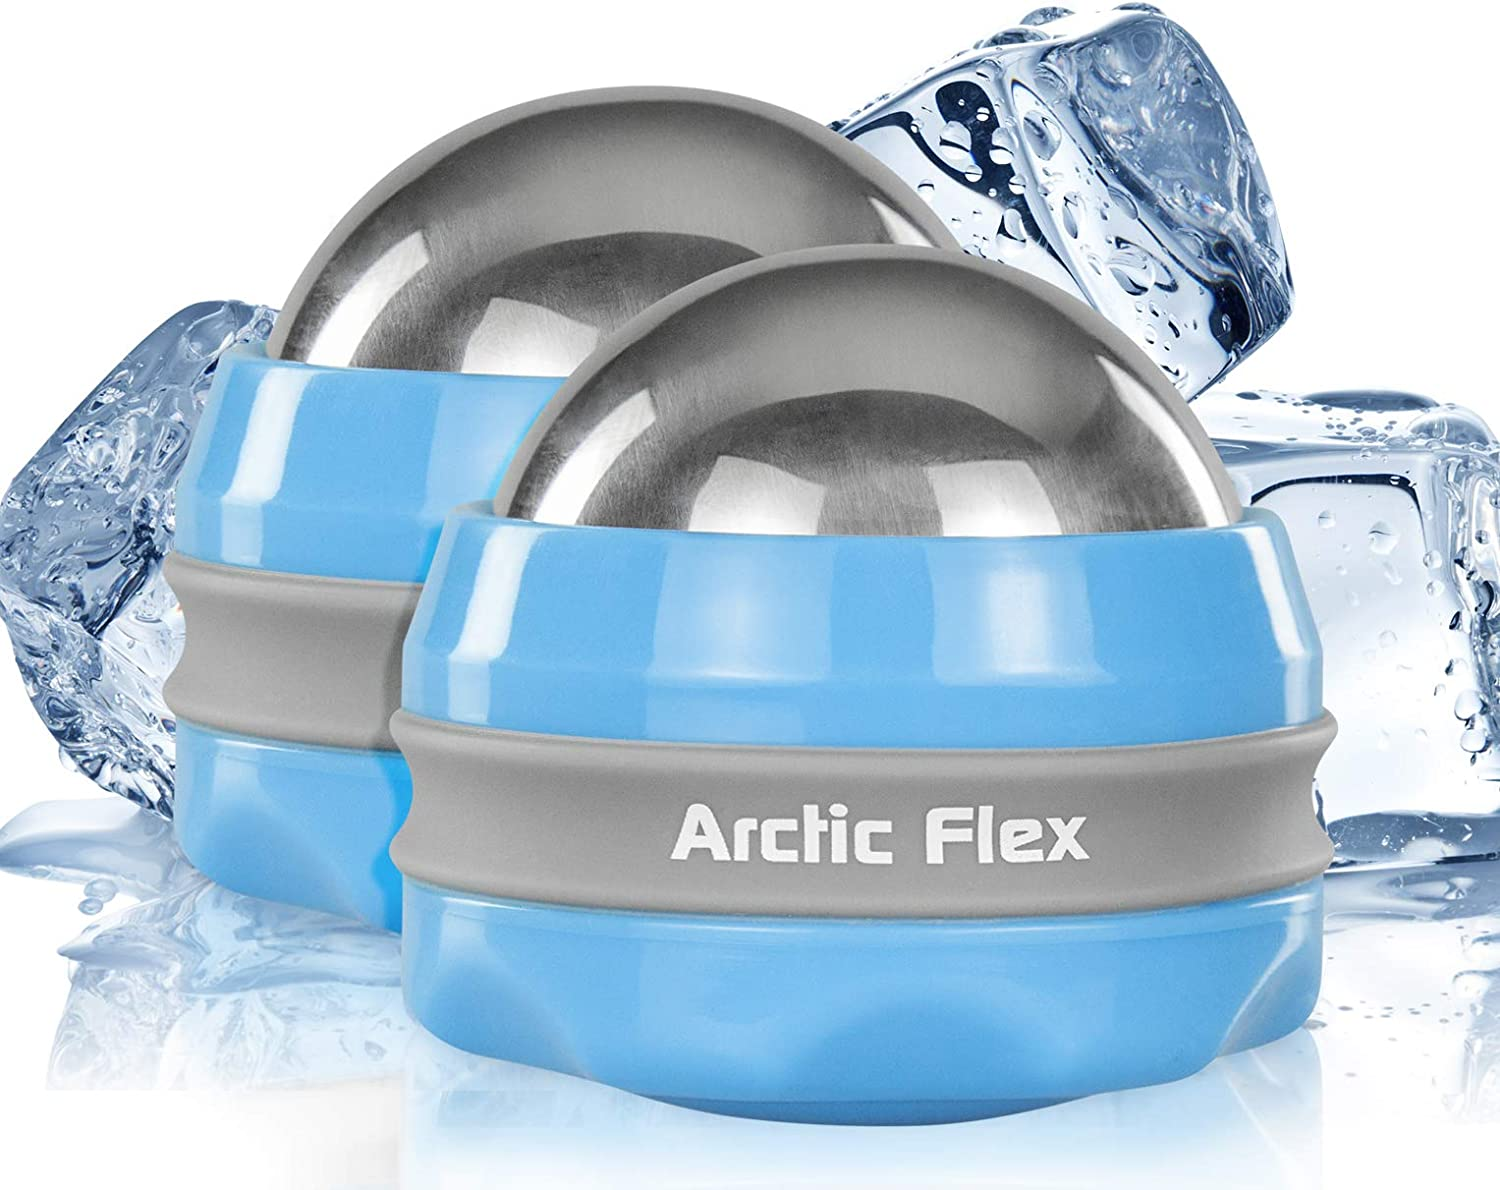 Arctic Flex Cold Massage Ball Roller (2-Pack) - Mini Cryo Massager Sphere for Back, Arm, Calf, Deep Tissue and Face - Manual Trigger Point Lacrosse Ball for Myofascial Release and Sore Muscle Relief: Health & Personal Care